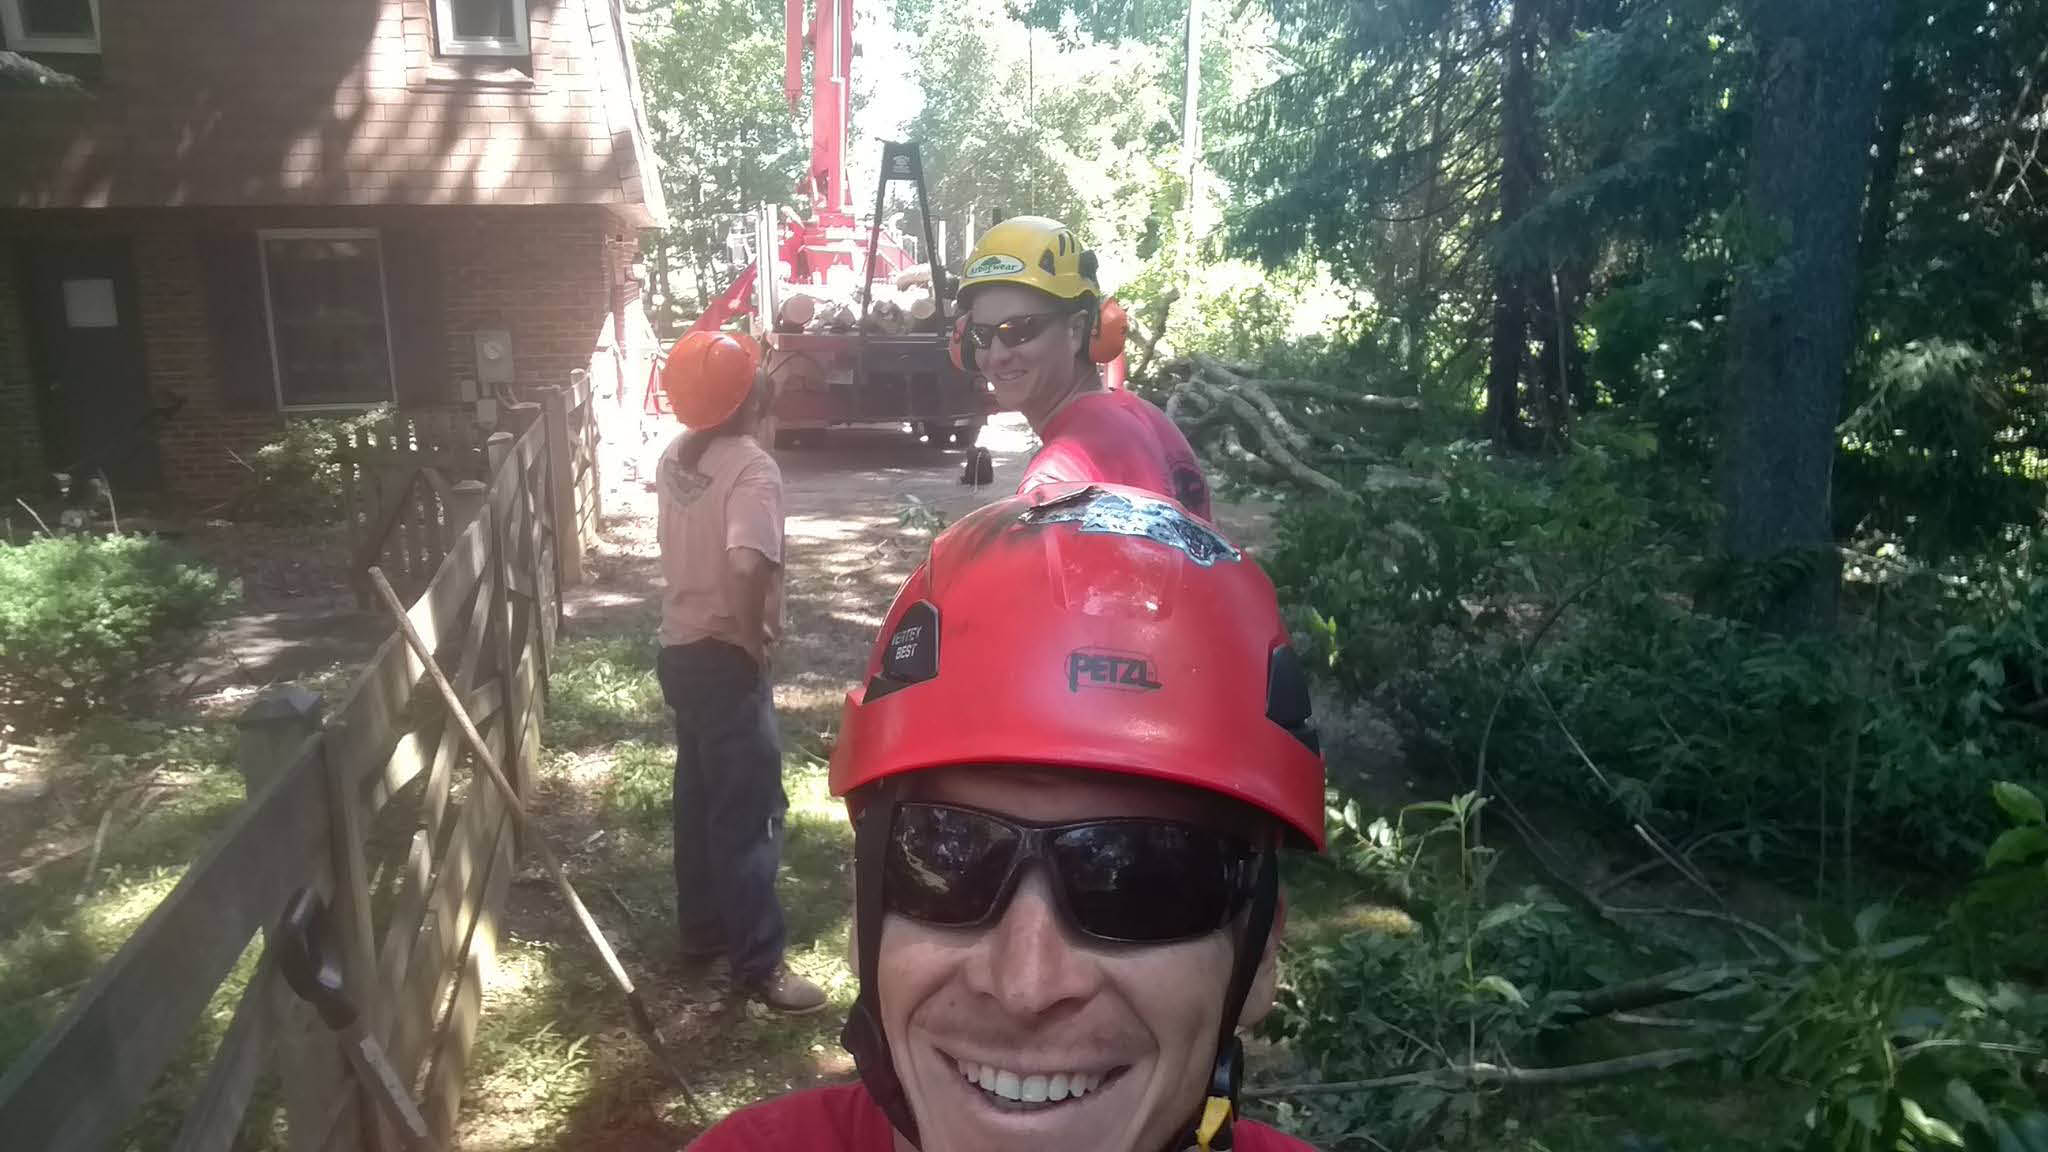 tree, stump, removal, pruning, drone, rescue, evaluation, property, logging, service